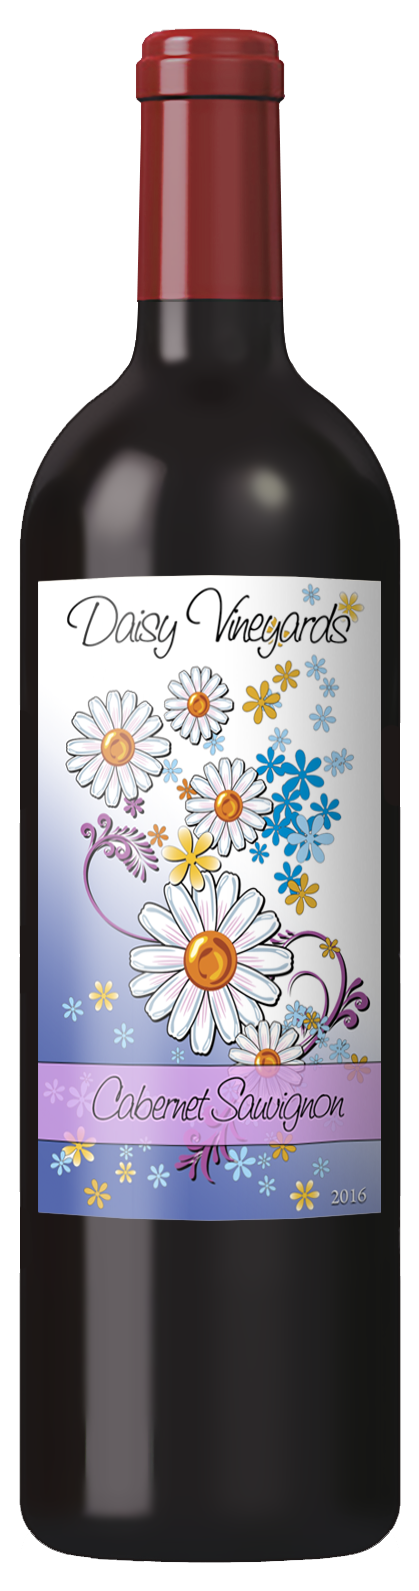 custom wine label with pretty flower illustration